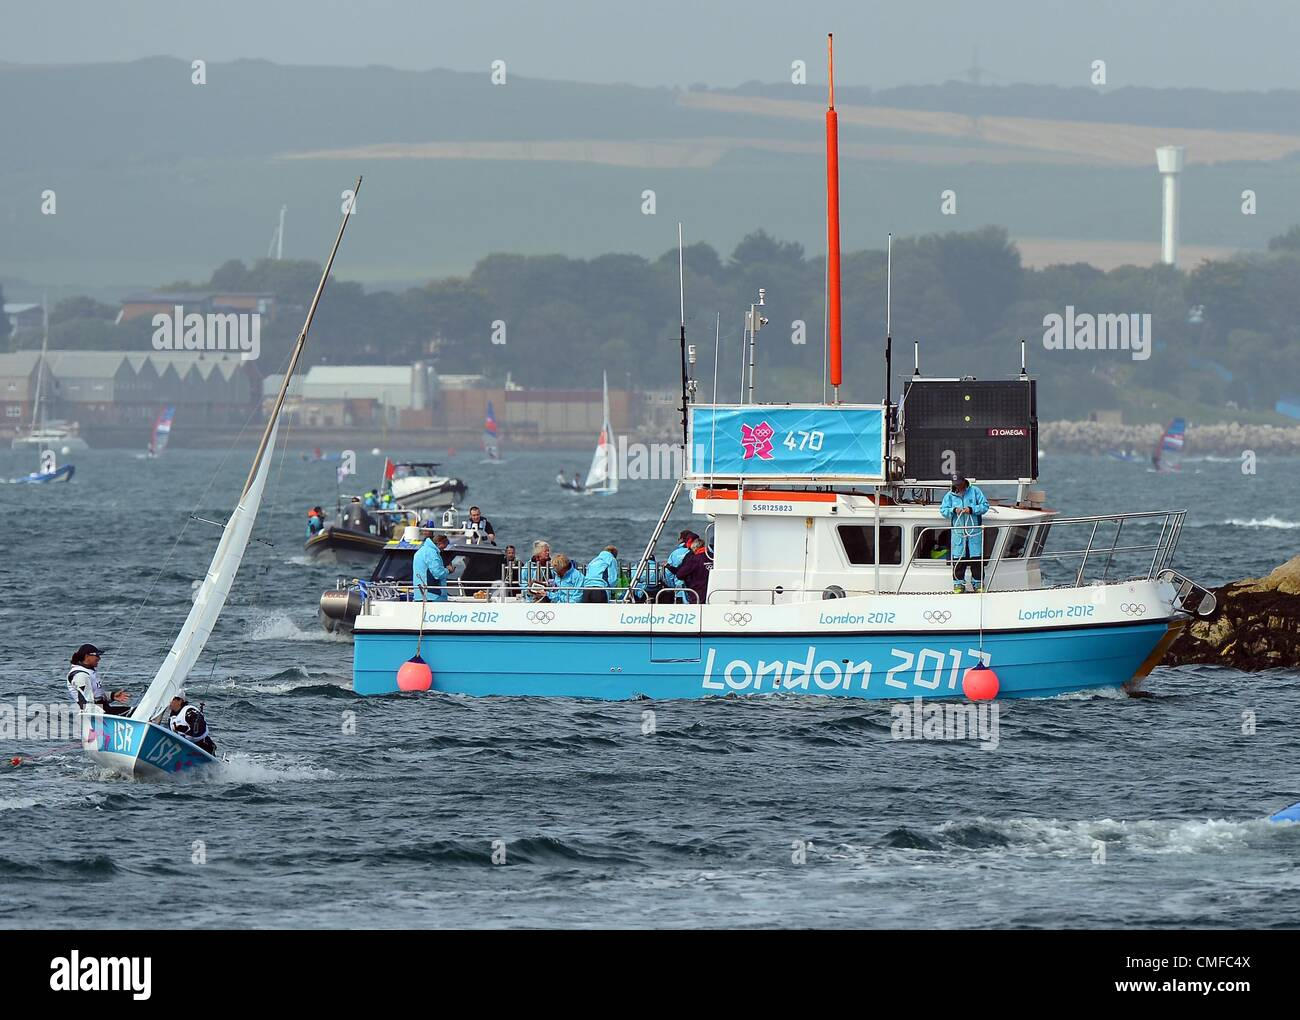 London 2012 Olympics: Sailing, action during the London 2012 Olympic Games at the Weymouth & Portland Venue, - Stock Image